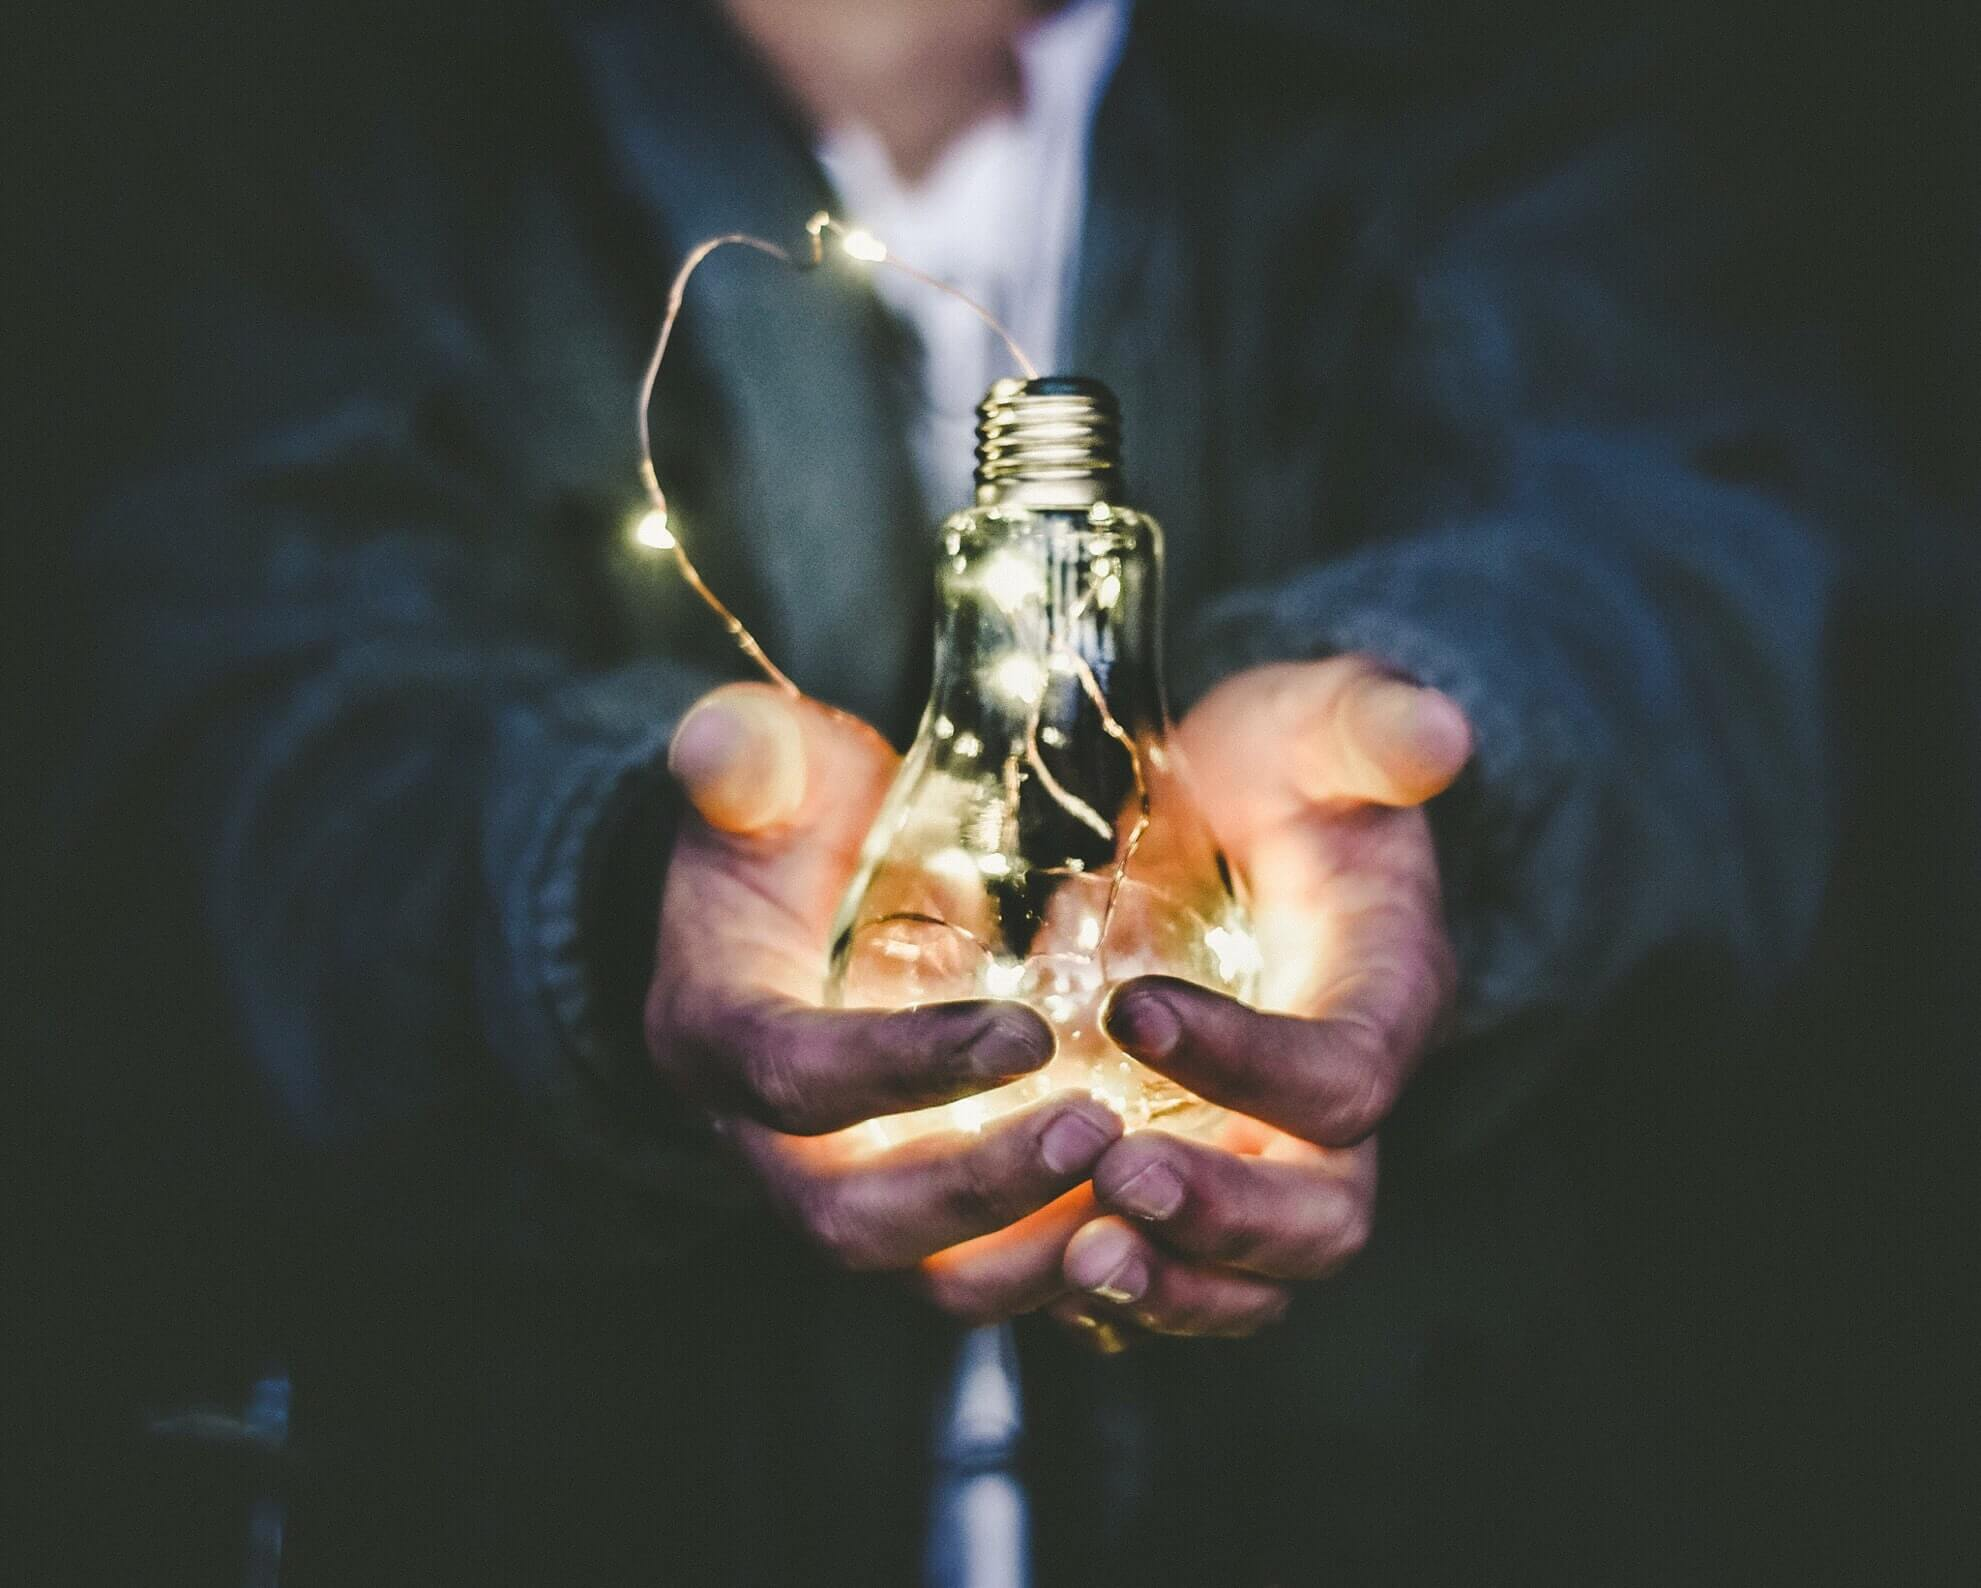 Image_representing_idea_with_lightbulb_in_hand